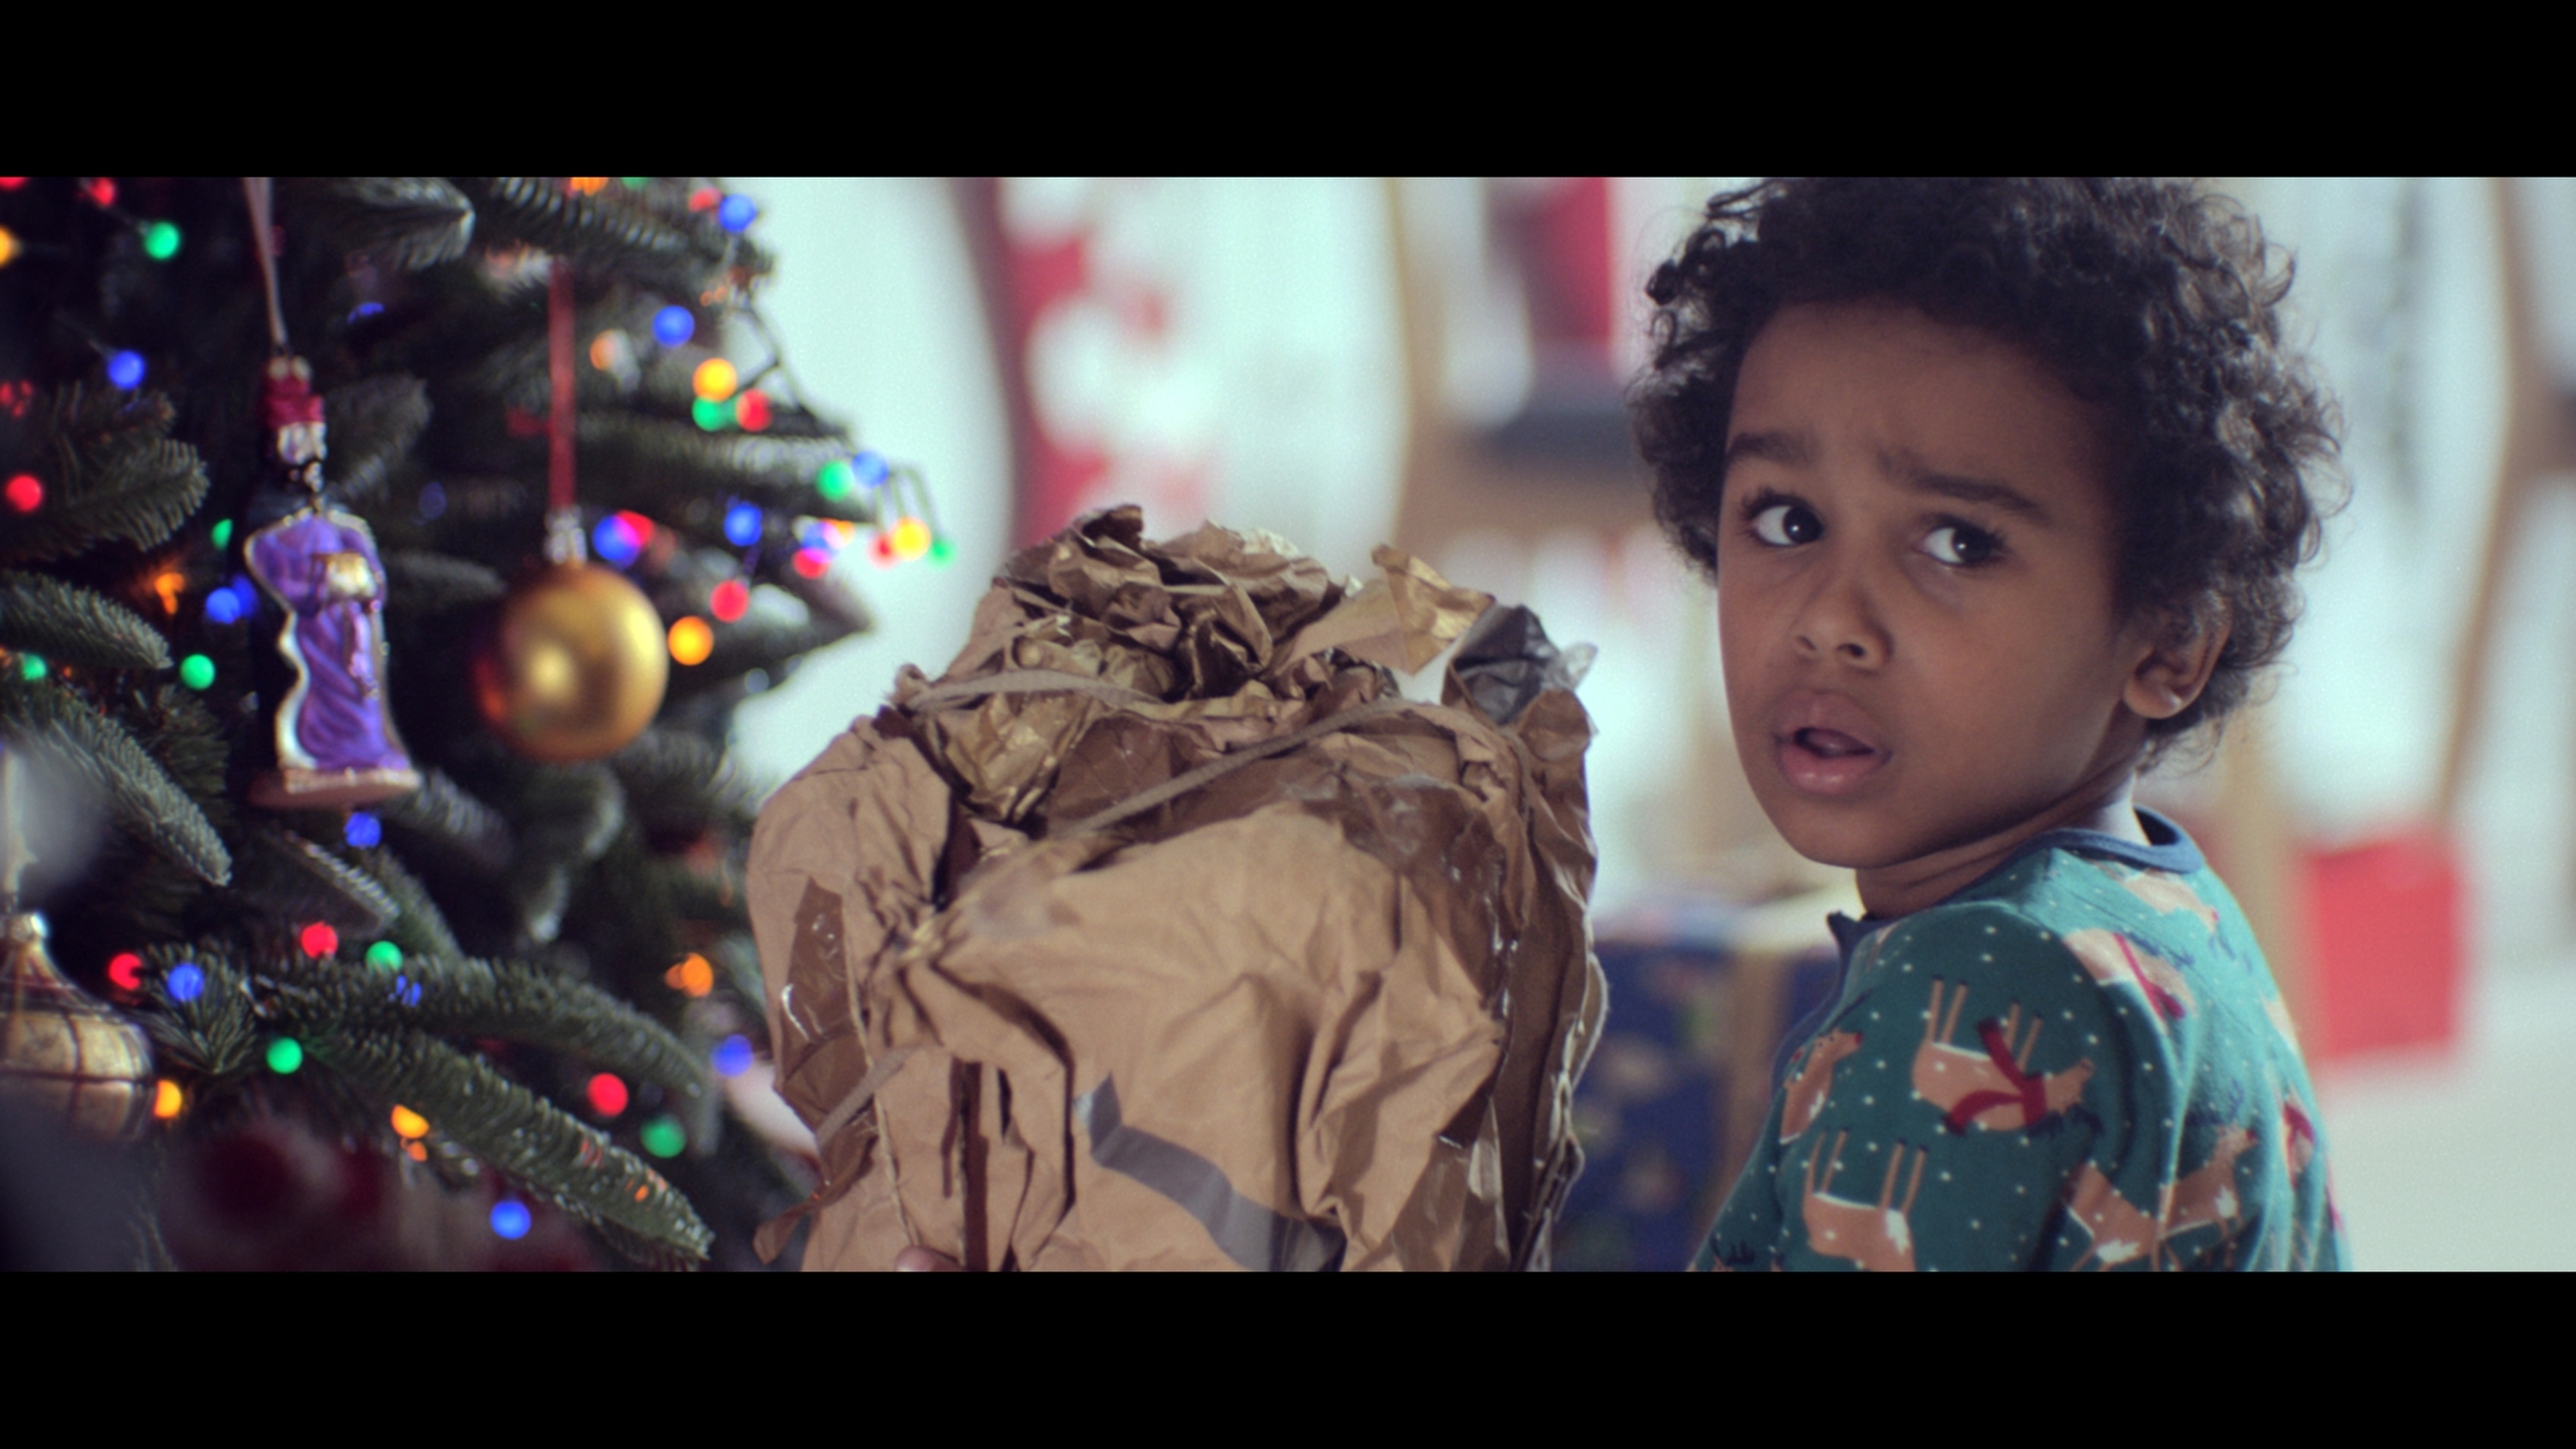 John Lewis Christmas Ad.Video The John Lewis Christmas Advert Is Out Watch It Here